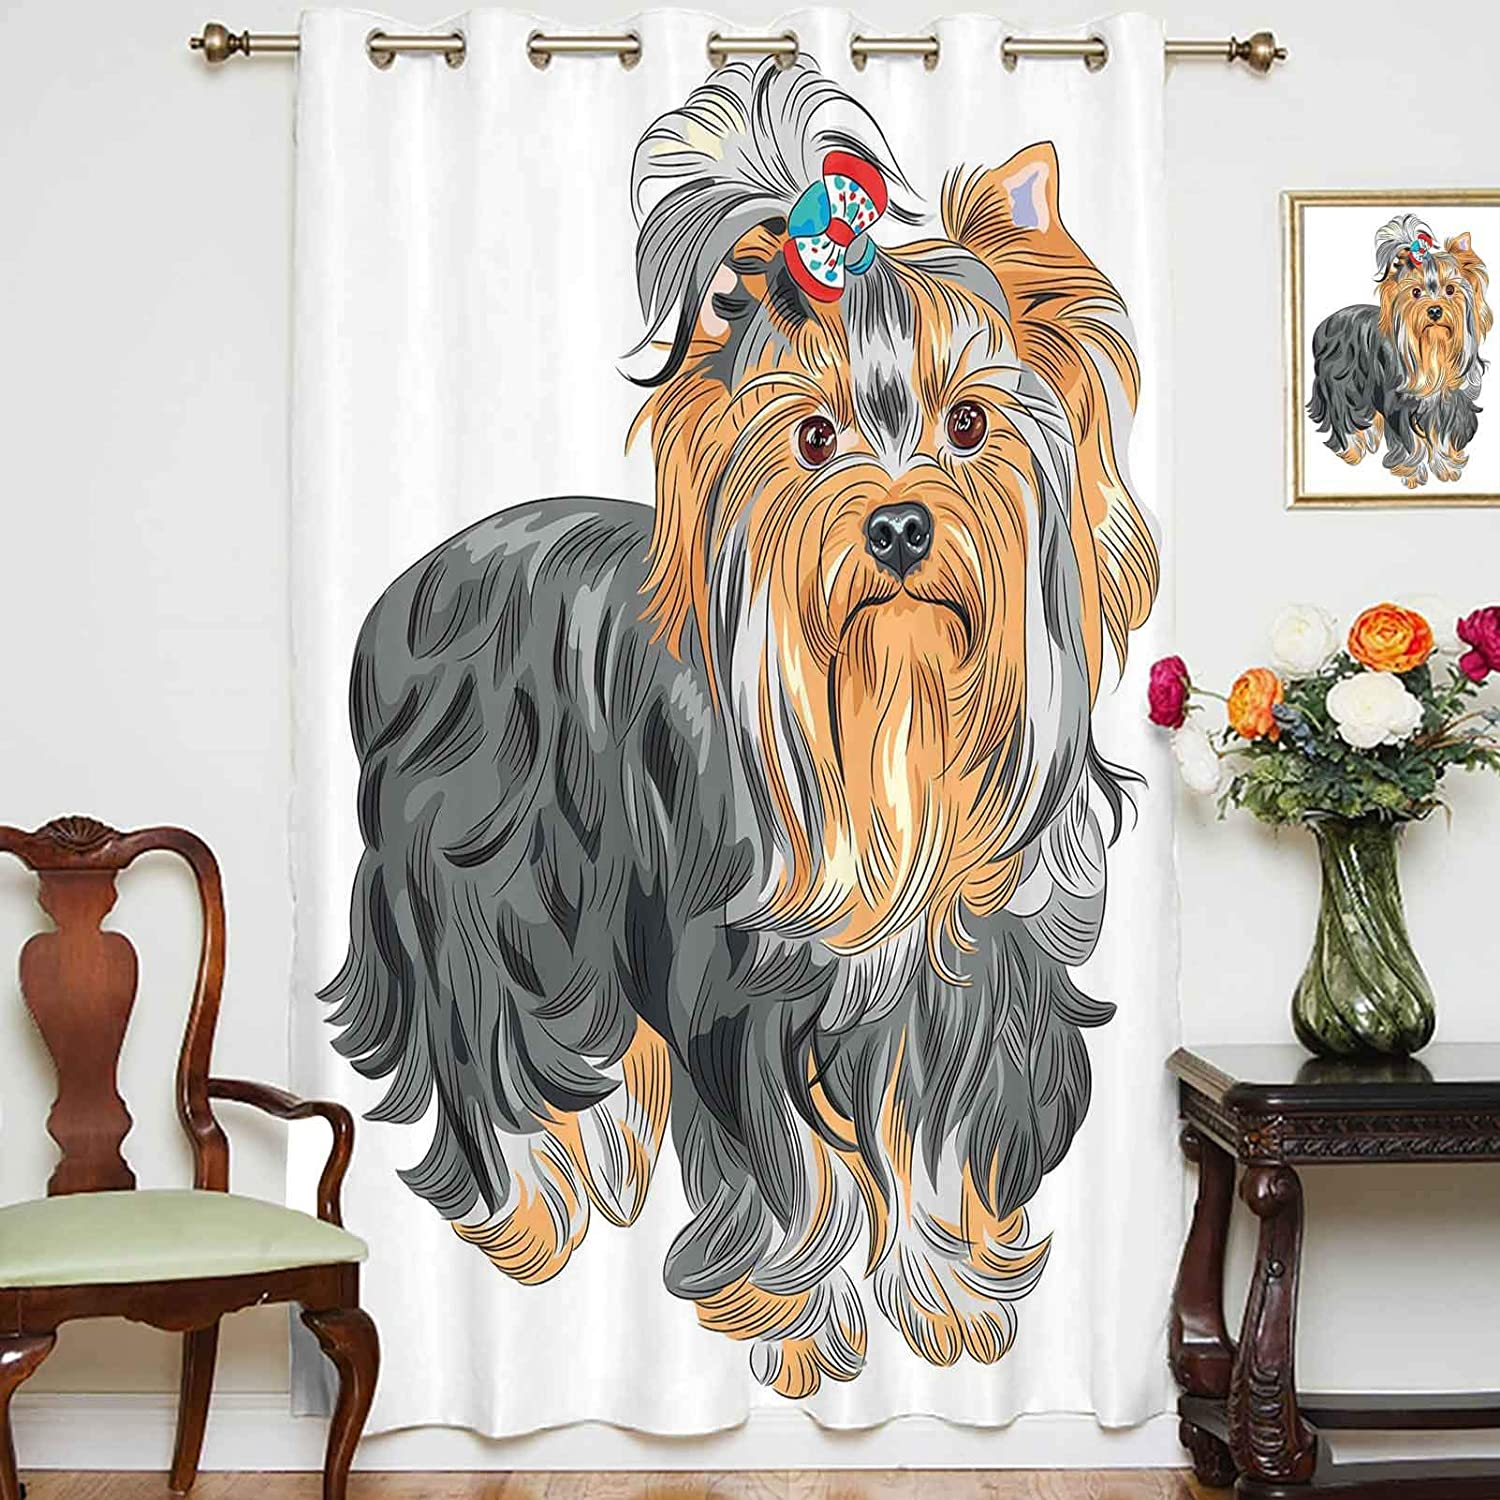 Blackout Shading Curtains Terrier 25% OFF with on Ranking TOP18 Bow Colored Head Cute